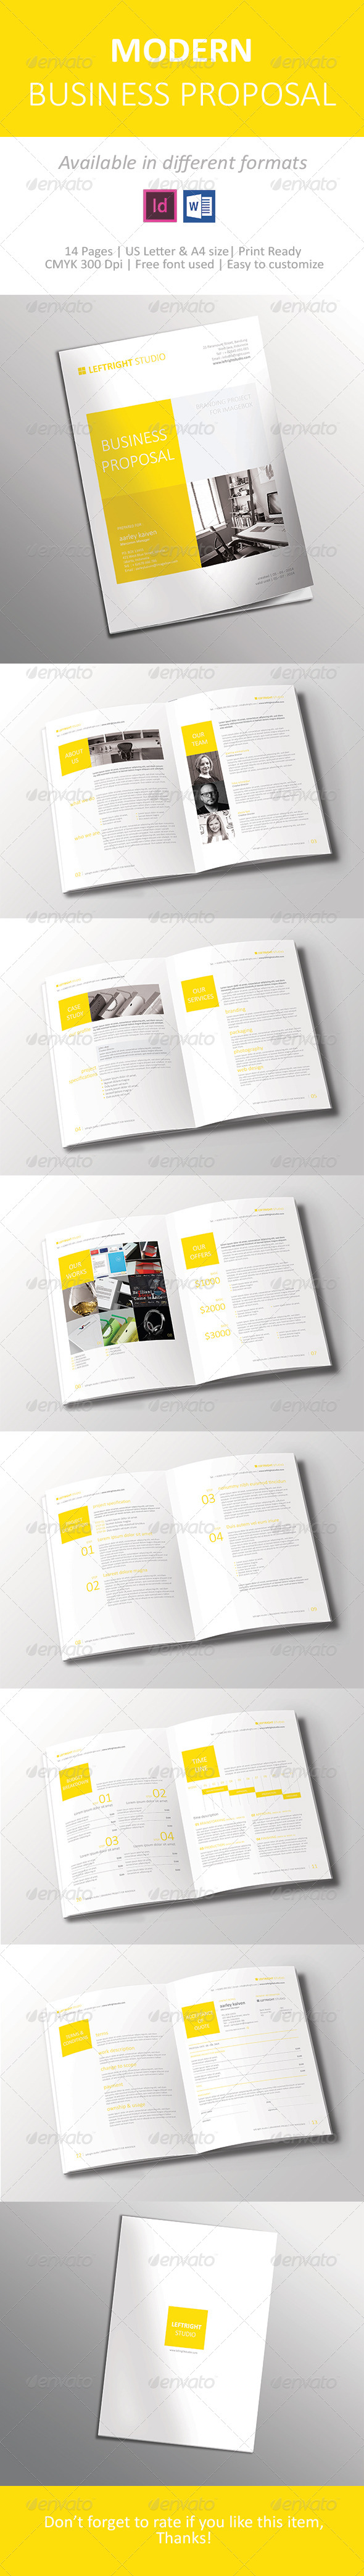 GraphicRiver Modern Business Proposal 7459513